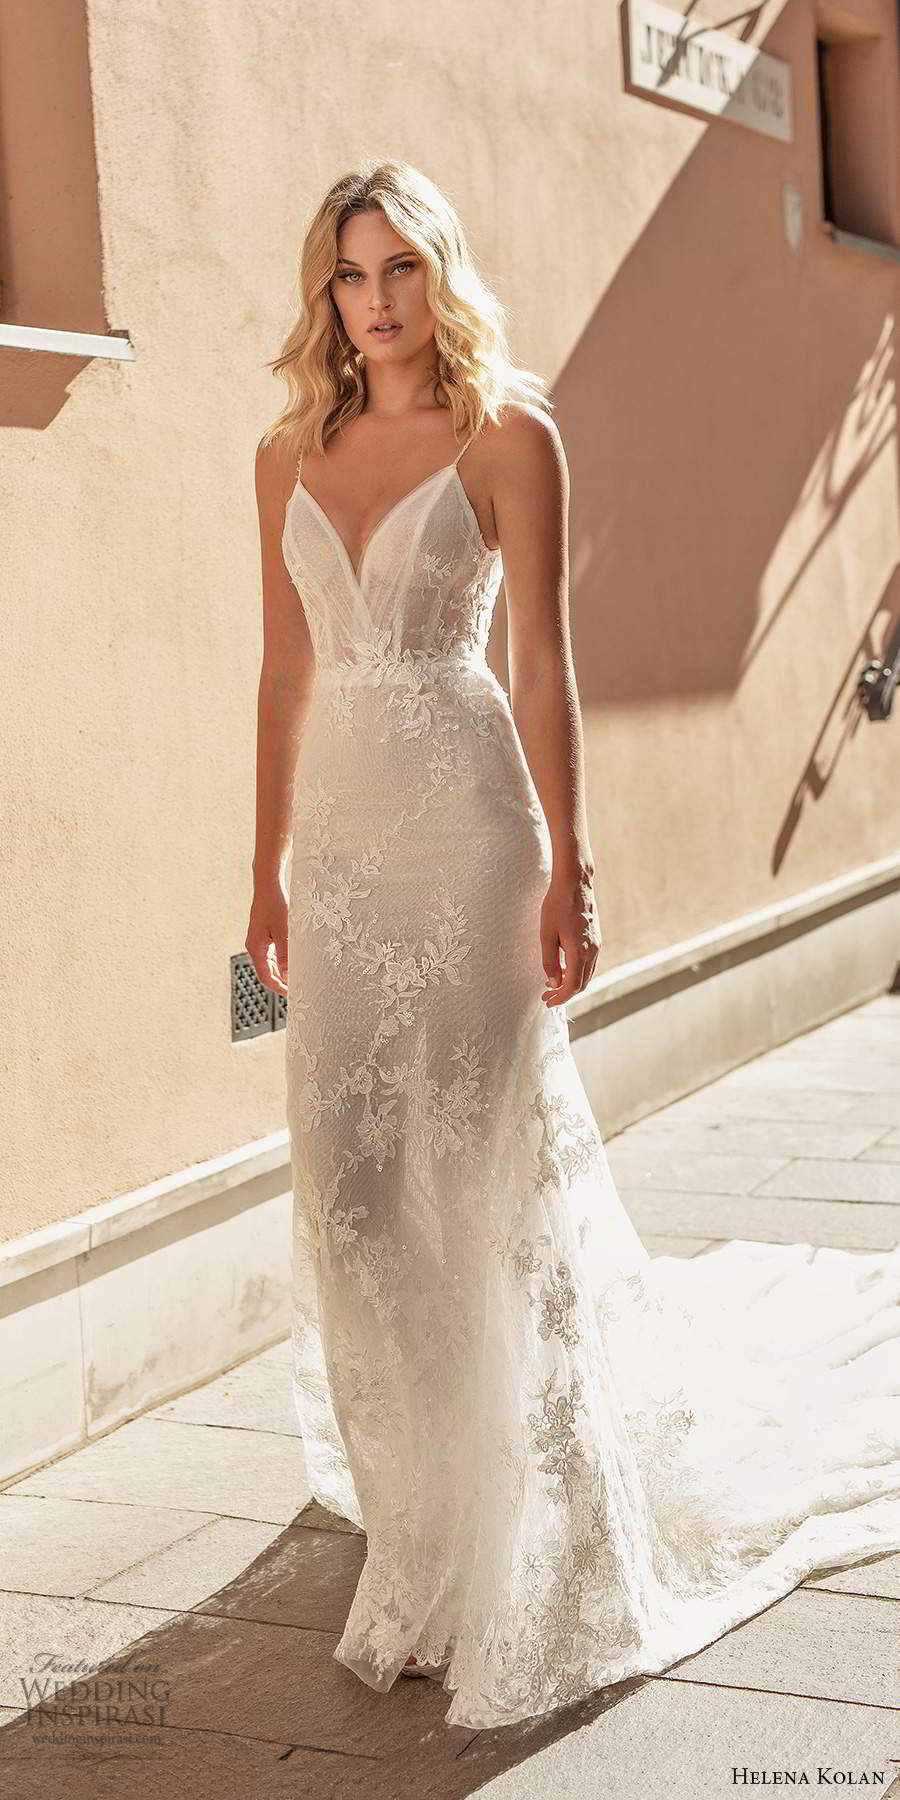 helena kolan 2020 bridal sleeveless thing straps sweetherat neckline fully embellished fit flare a line lace wedding dress sheer back chapel train (3) mv